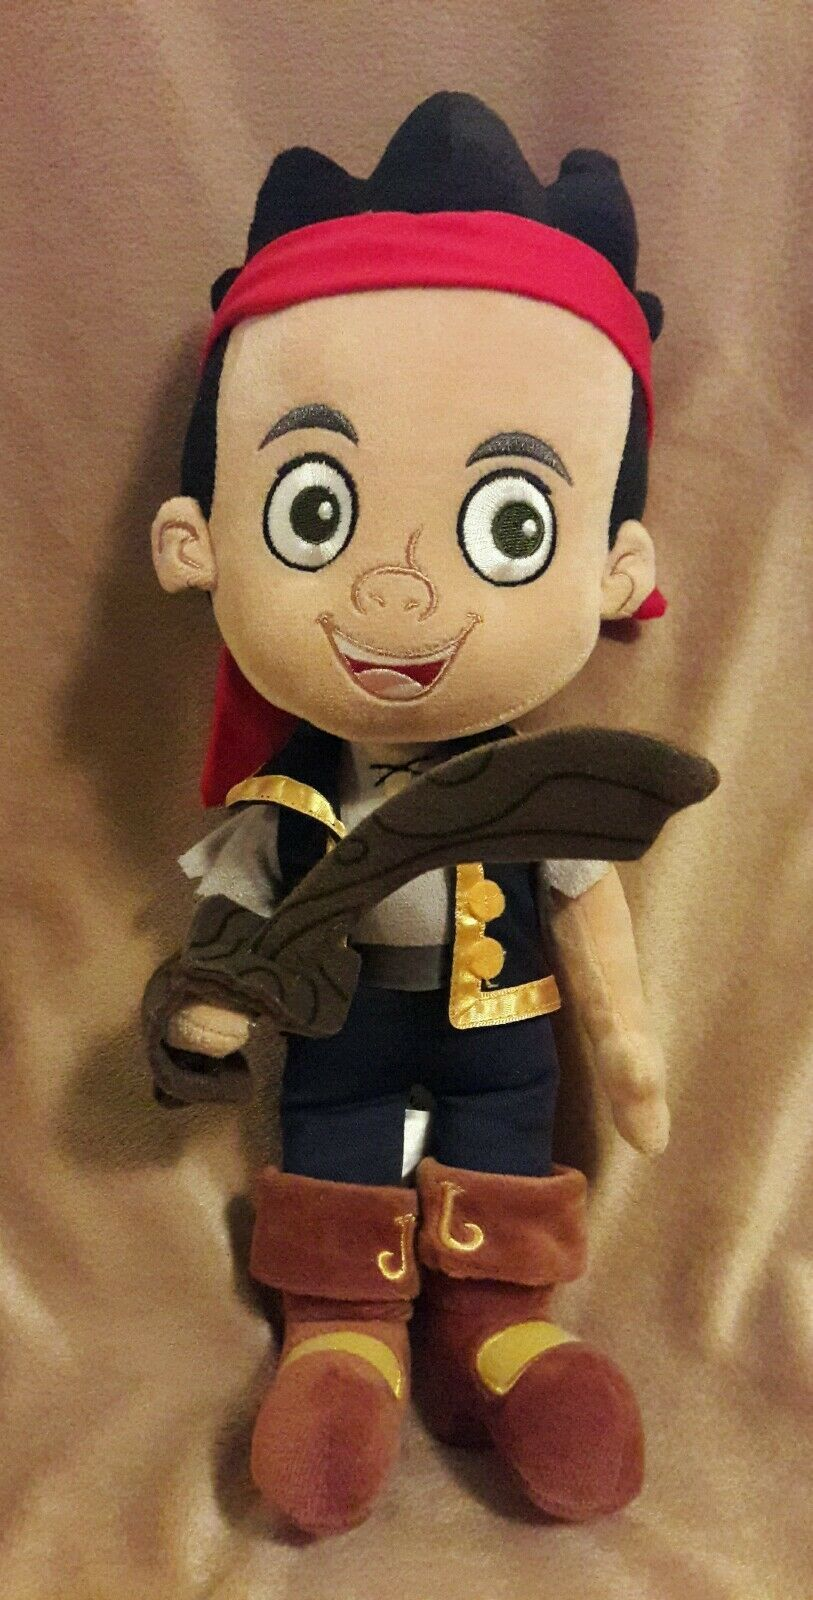 DISNEY STORE Jake & The Never Land Pirates Stuffed Animal JAKE Plush Doll 14""